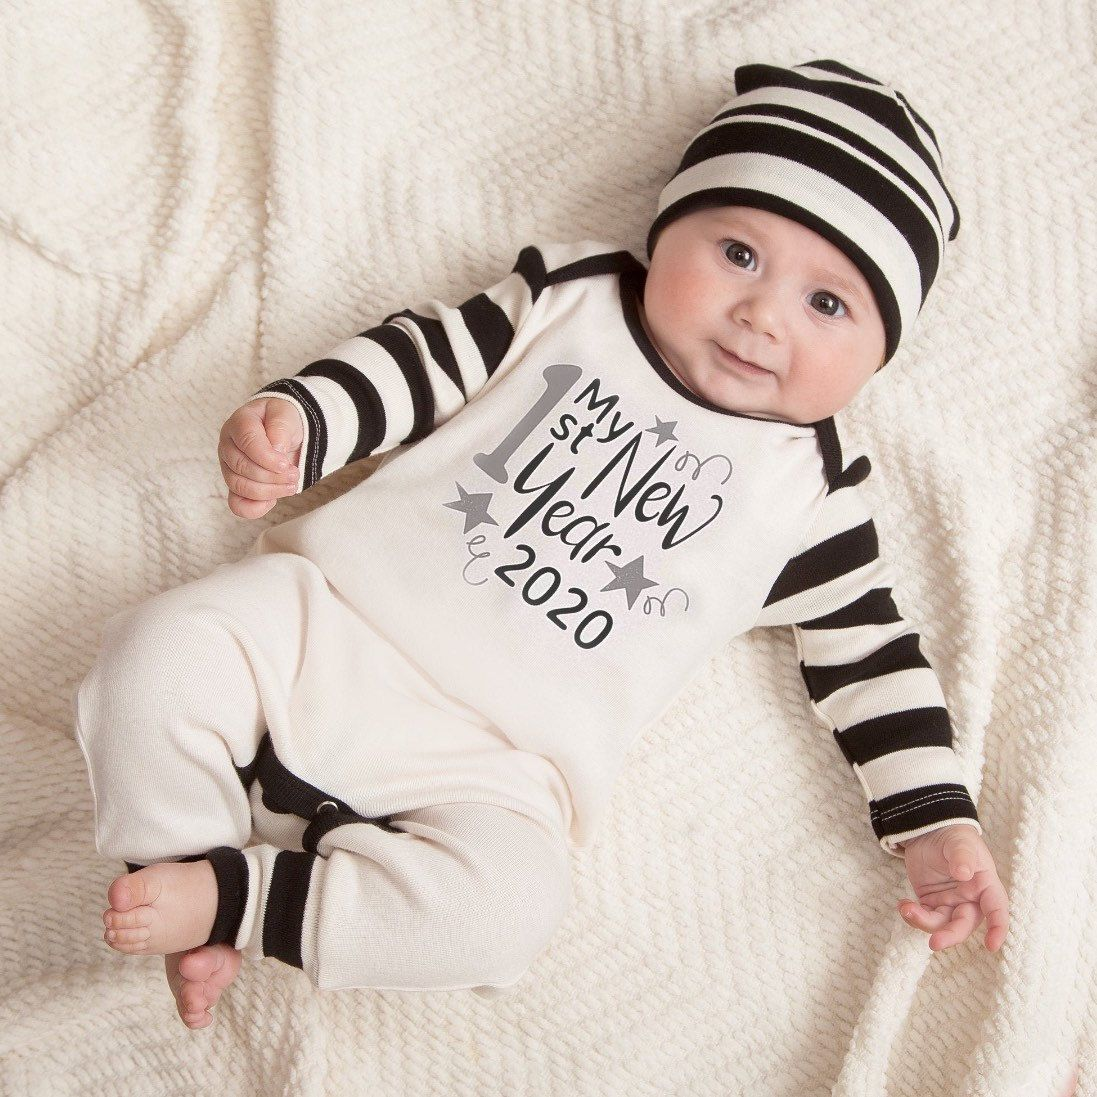 Baby New Year Outfit, Happy New Year 2020, Newborn New